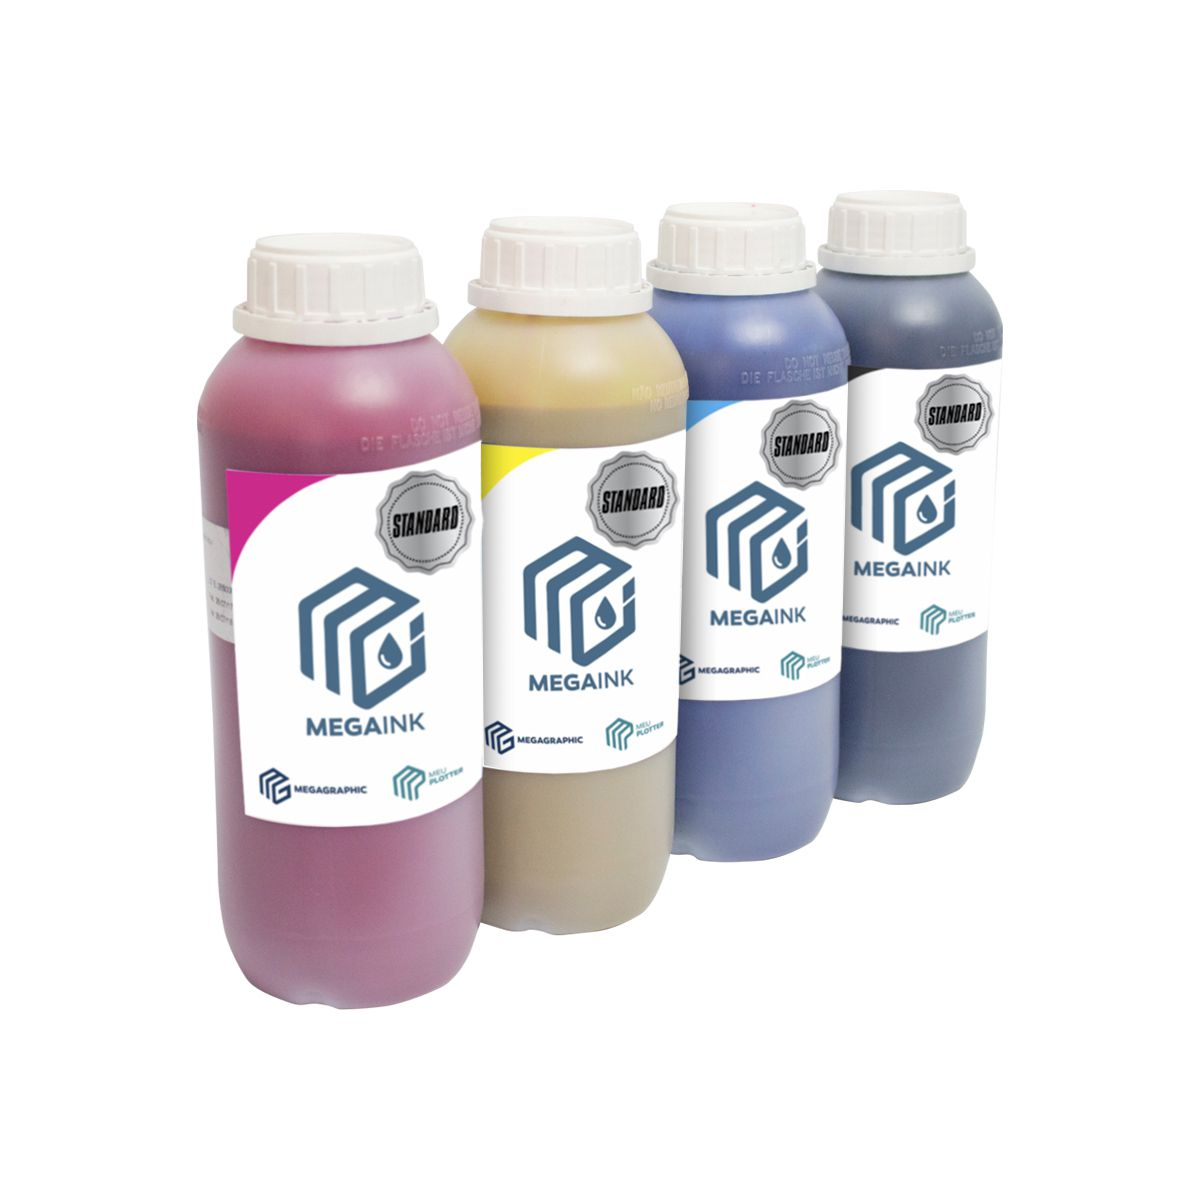 KIT de Tinta ECO Solvente - MP ECO STANDARD CMYK